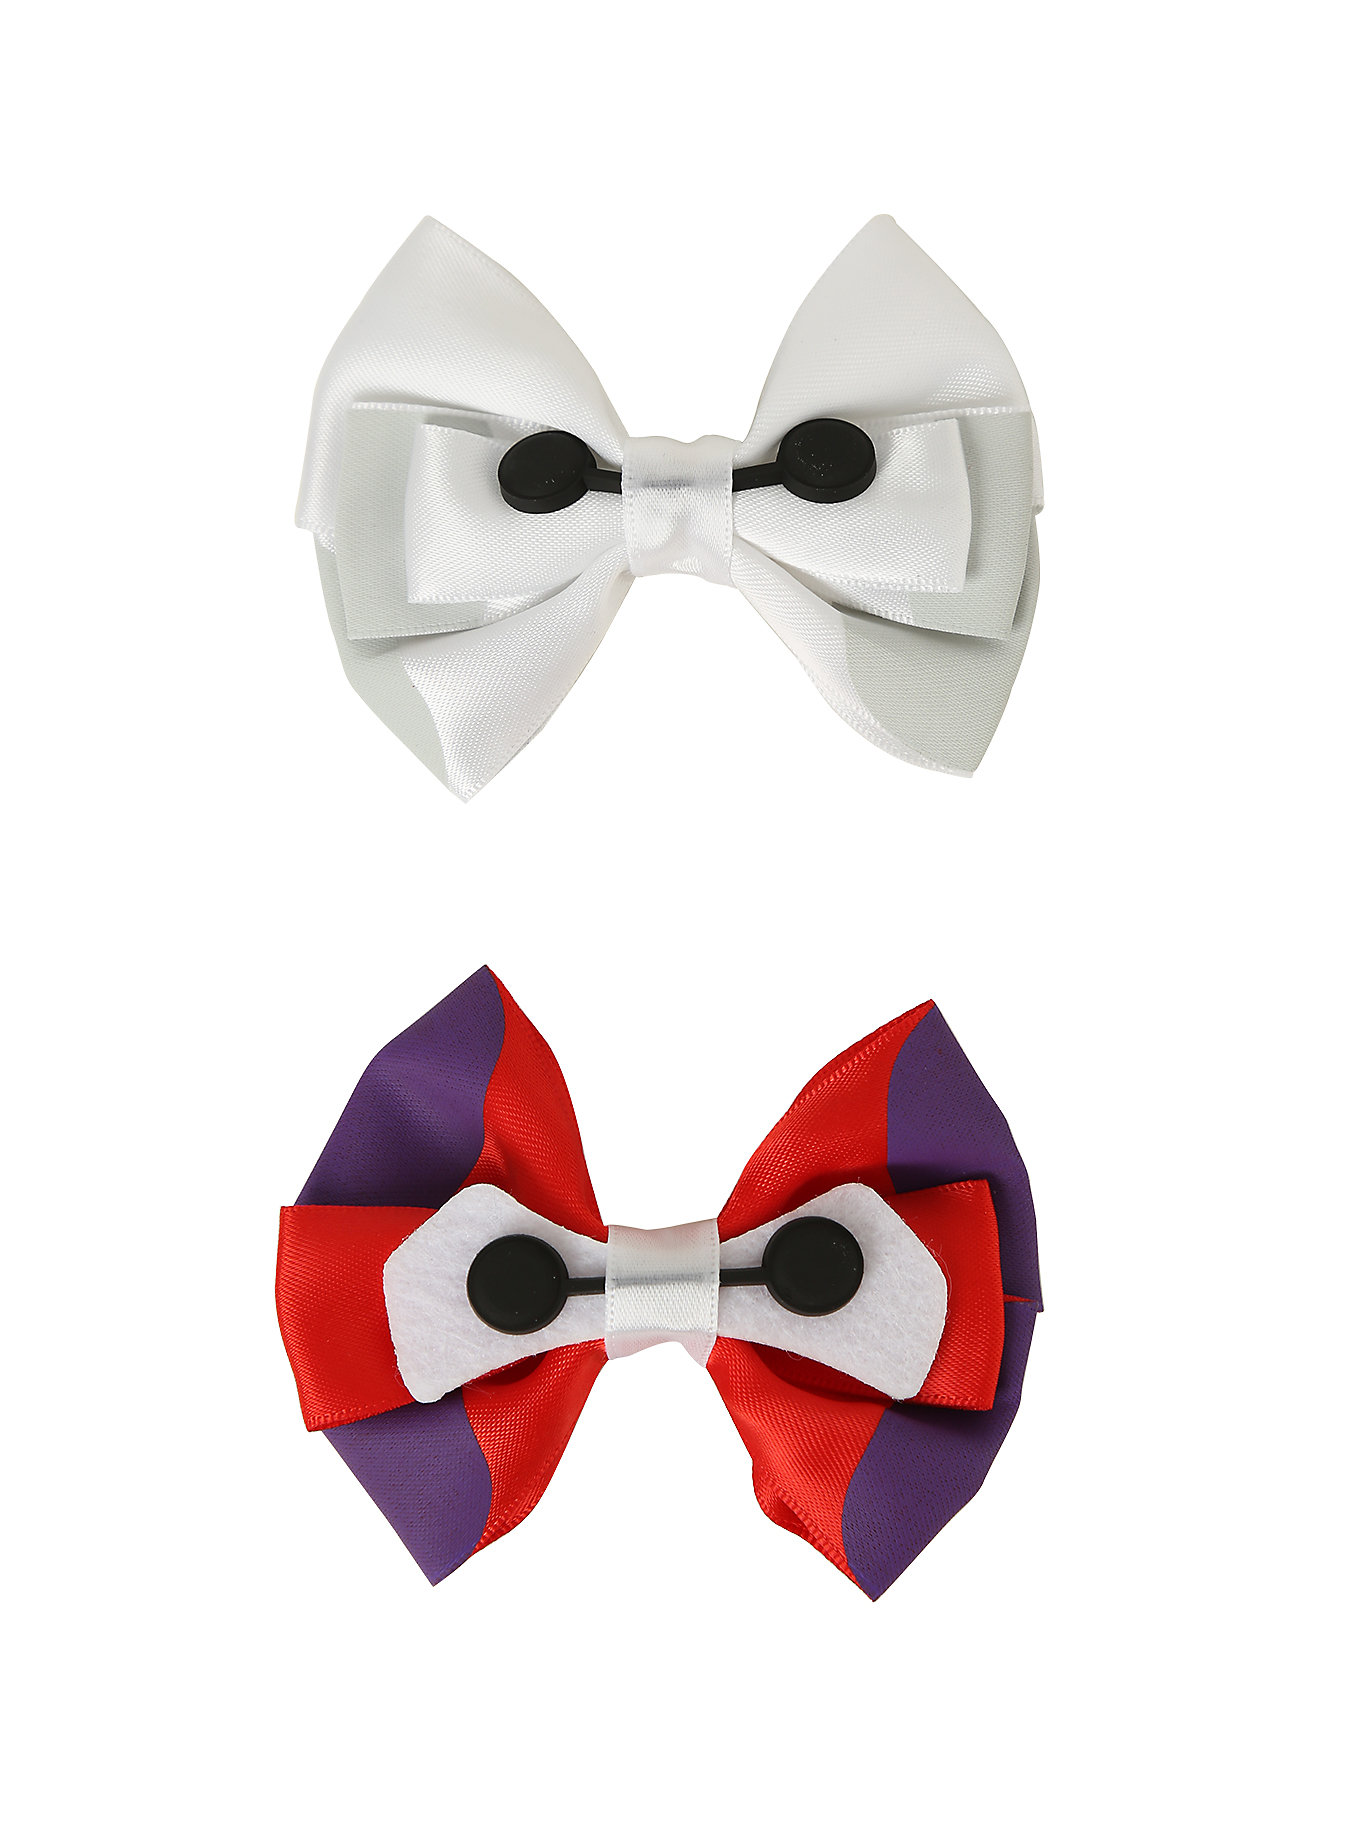 New Hair Bows For Women Online At Hot Topic Diskingdom Disney Marvel Star Wars Toys Merchandise Collectibles Entertainment Theme